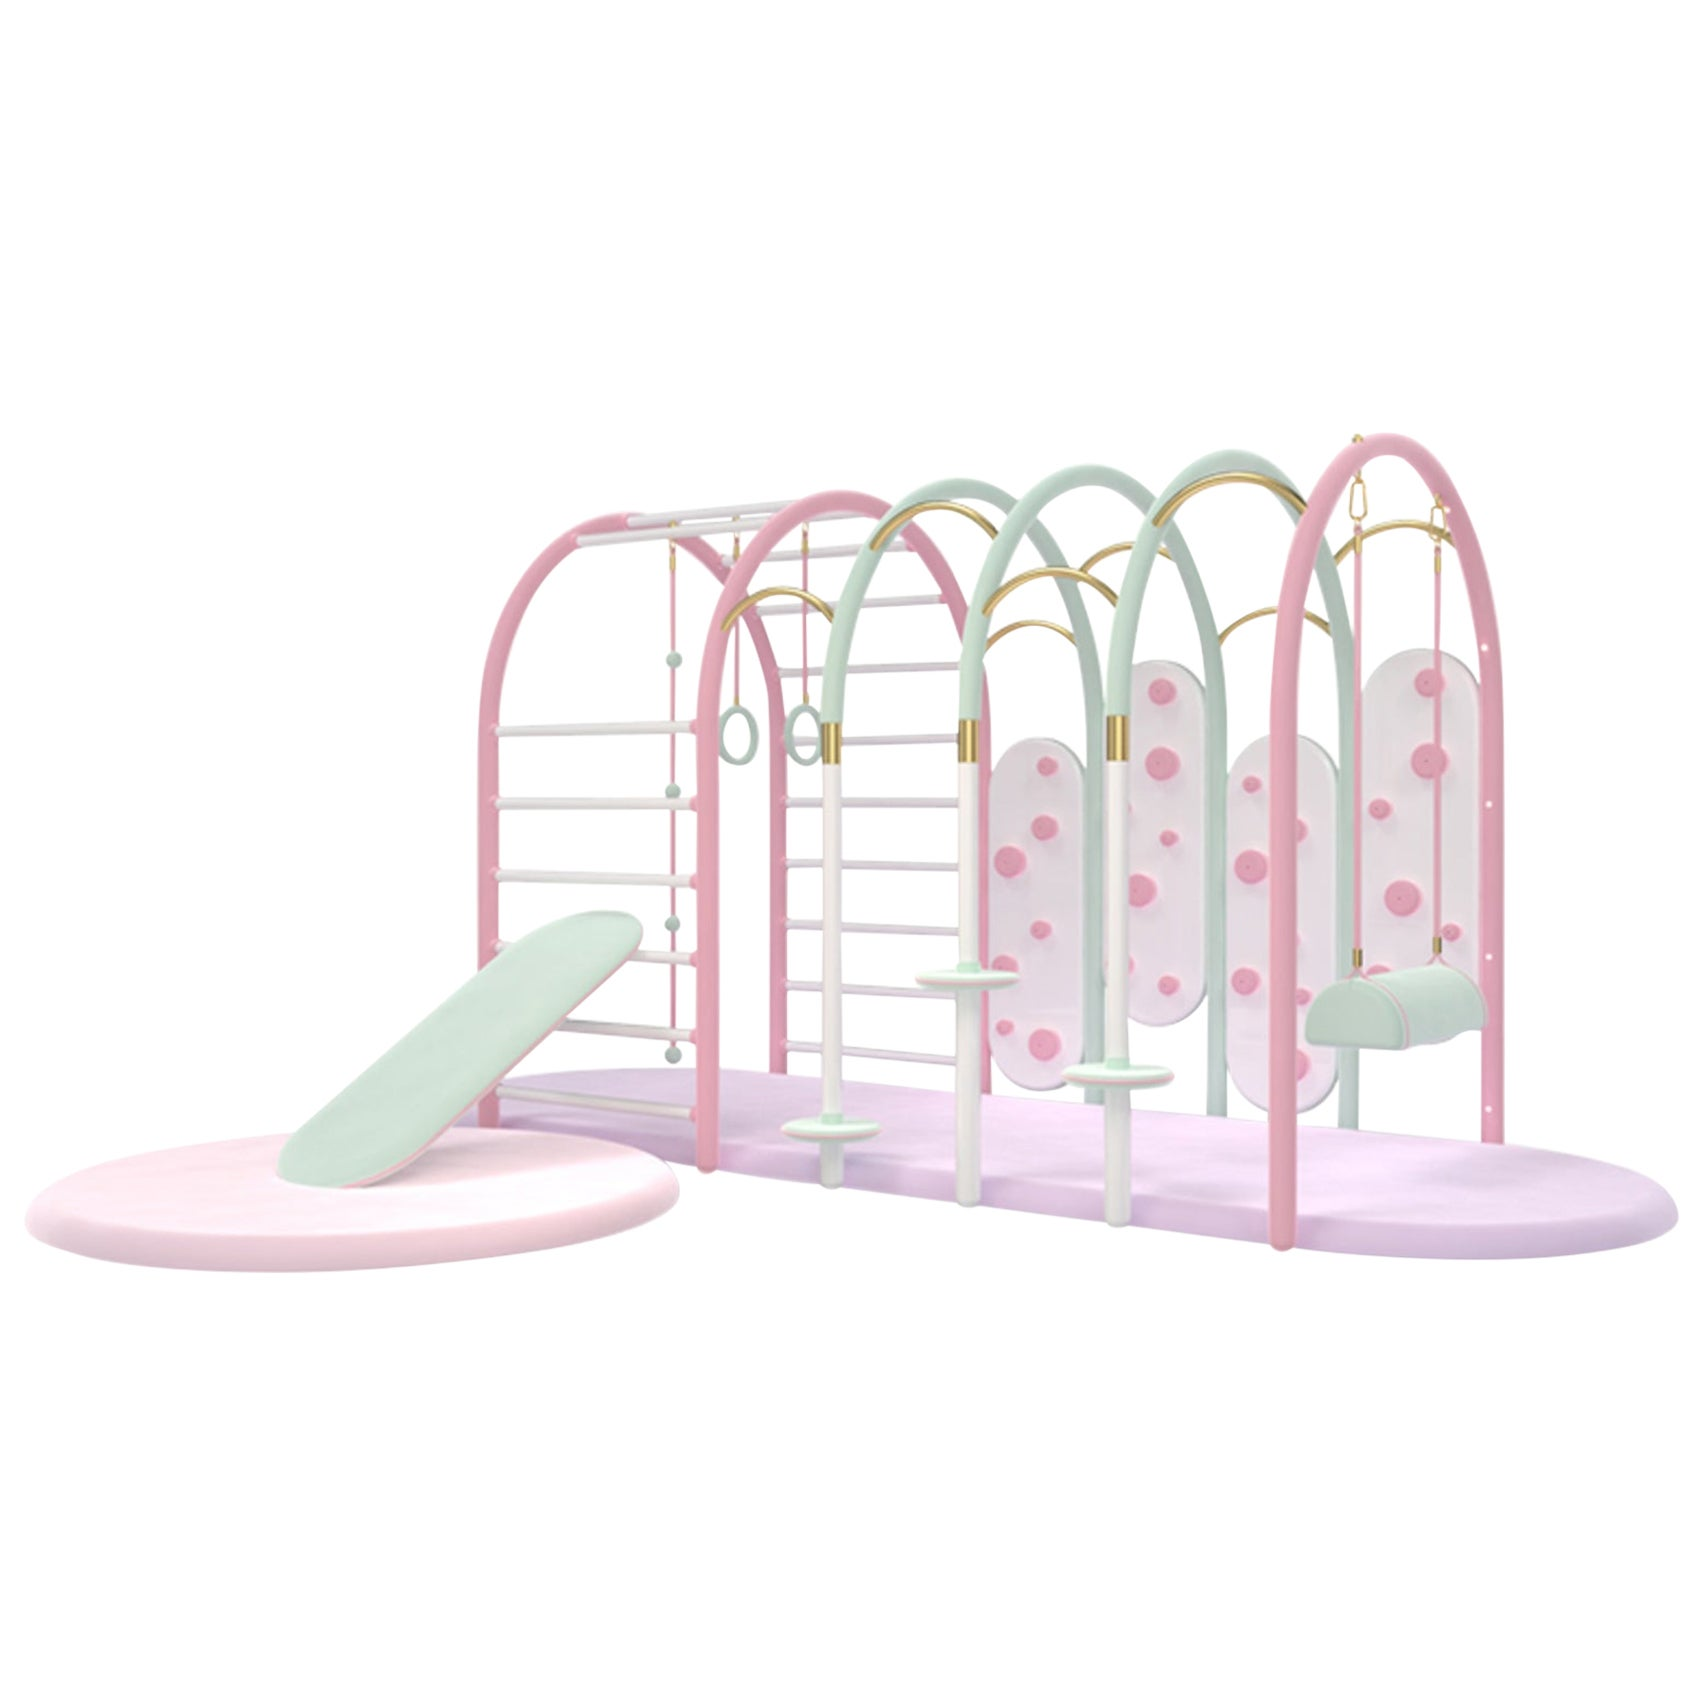 Bubble Gum Gym with Gold-Plated Details and Lacquered Wood